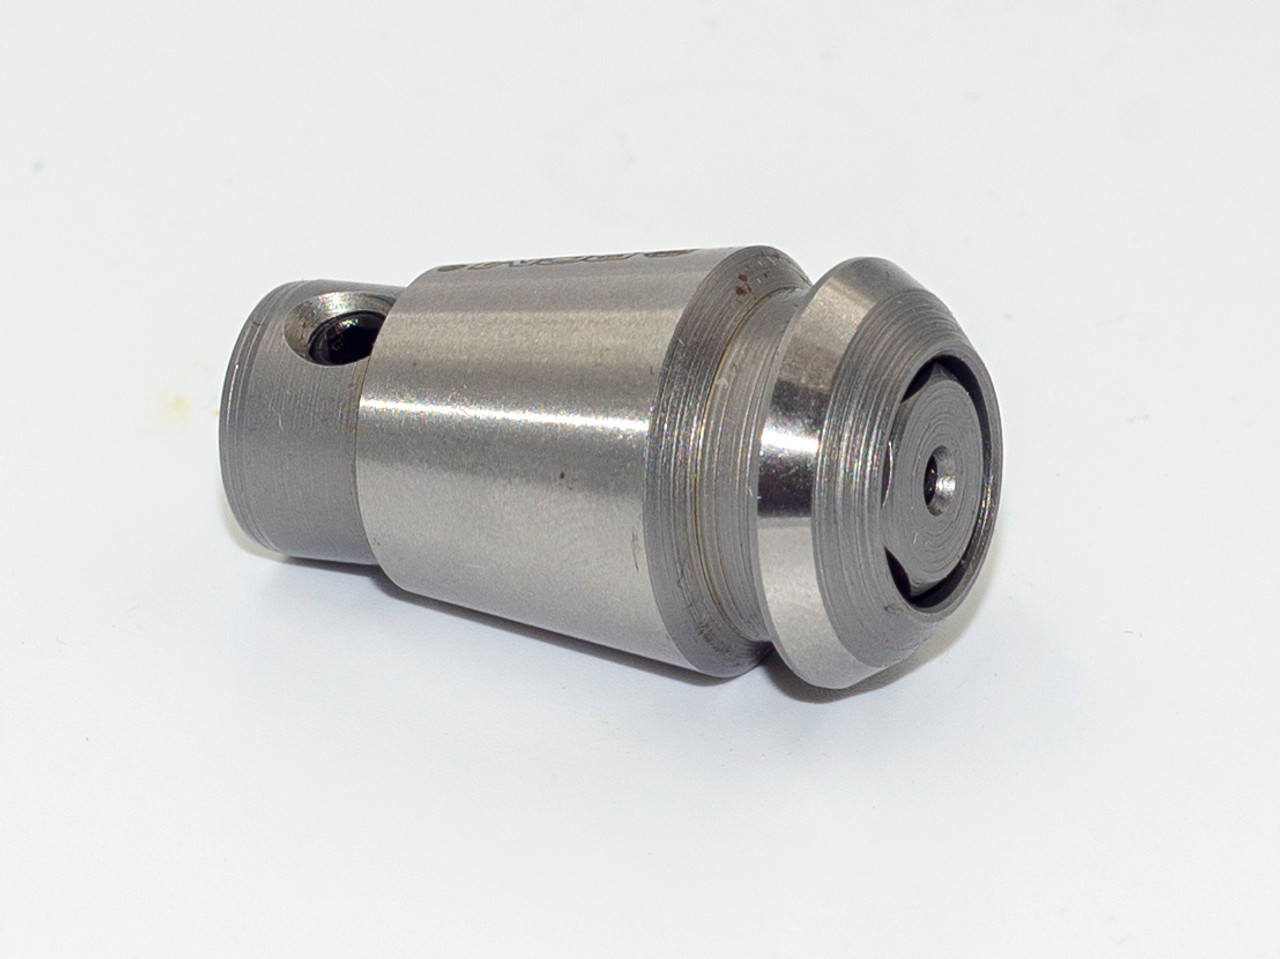 This Tapping  collet is for Taps with a 2.0mm shank diameter.  Tapping collets, fit ER-16 collet holders,  Select the collet that fits the shank of your tap.  These spring loaded collets fits shank sizes 1.0mm, 1.5mm and 2.0mm.